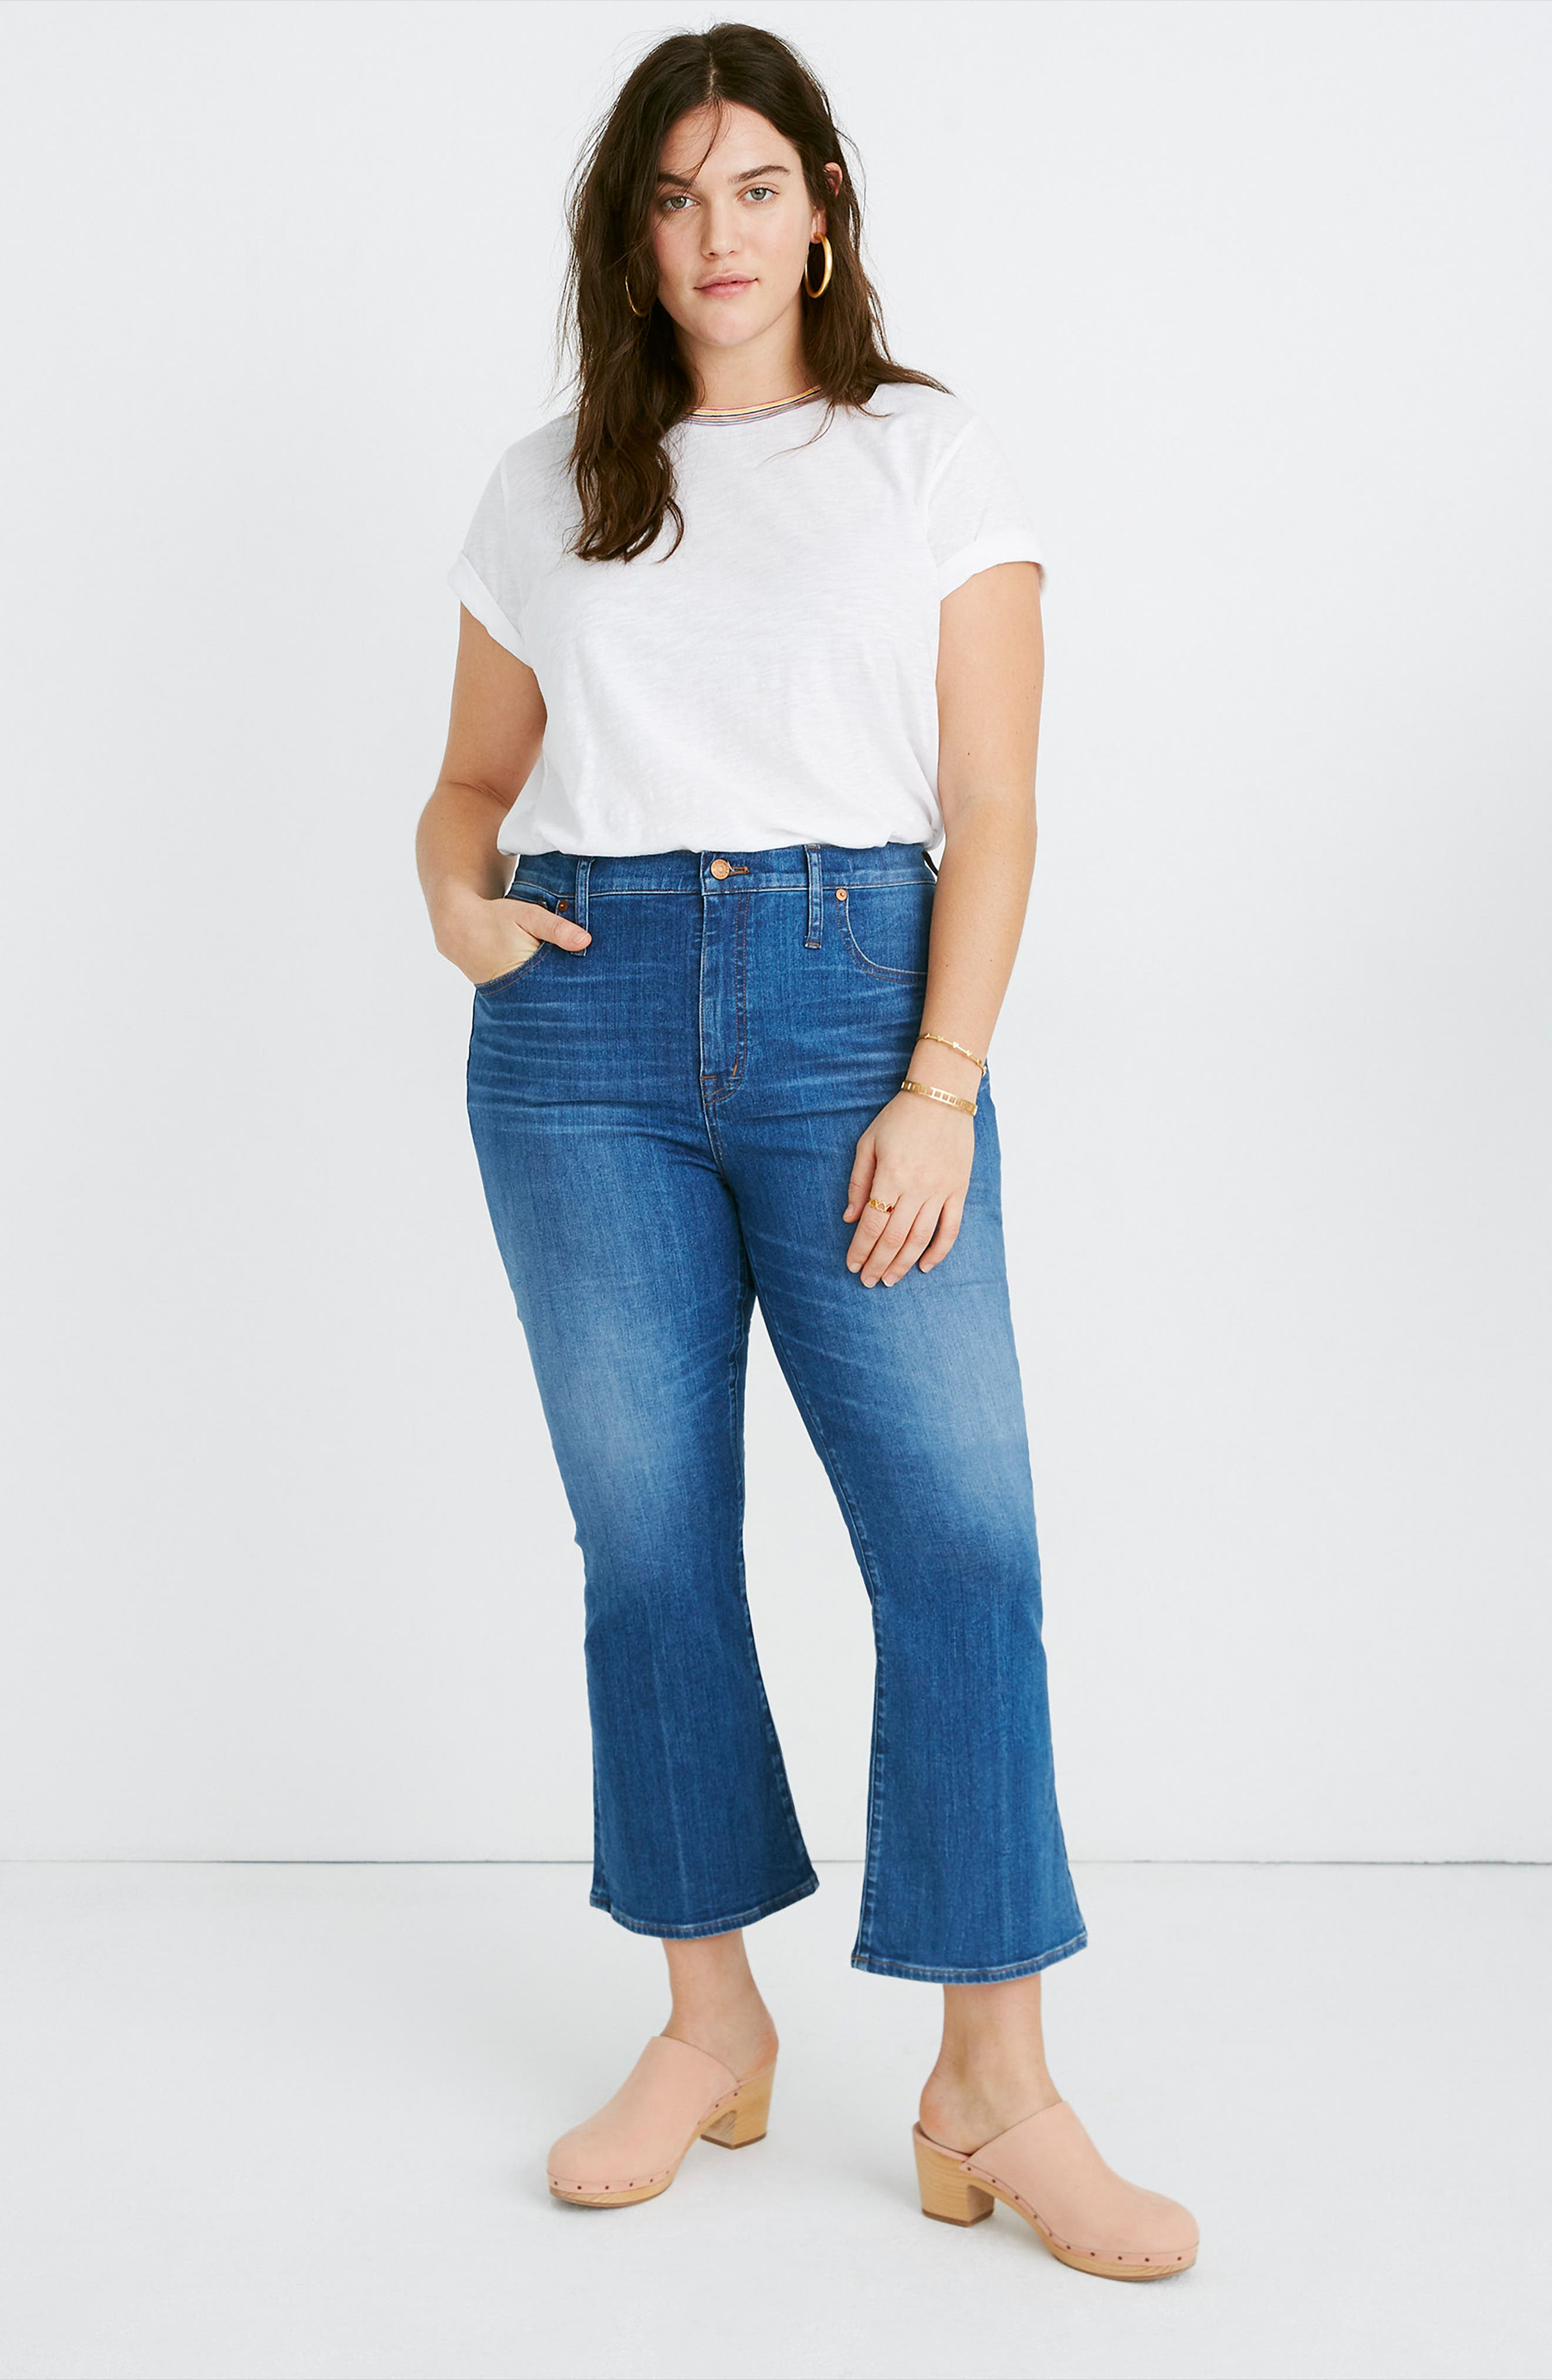 MADEWELL, Eco Edition Cali Demi Boot Jeans, Alternate thumbnail 12, color, TIERNEY WASH